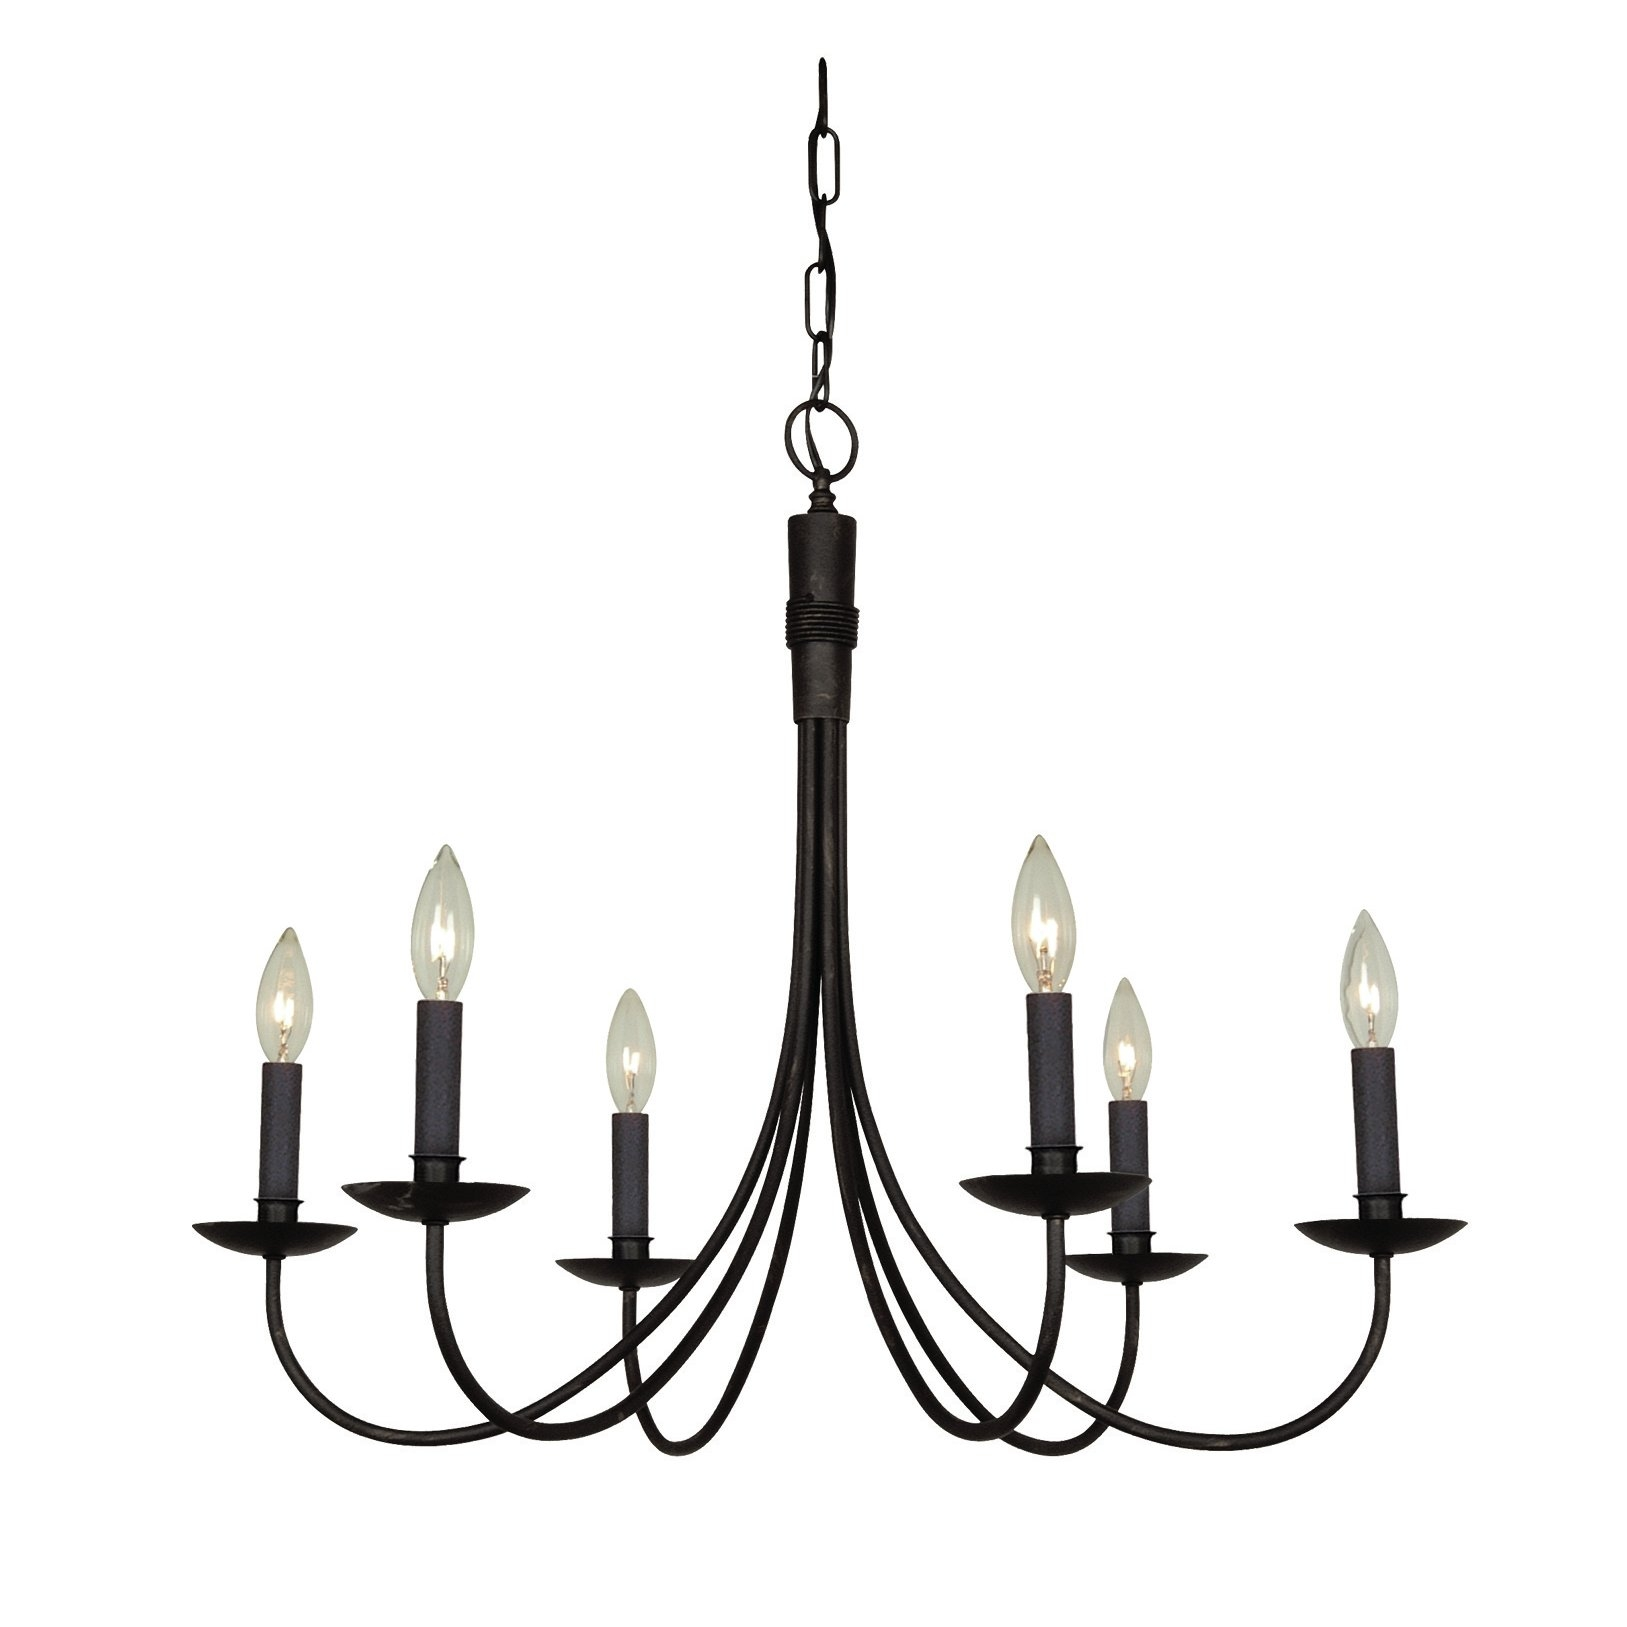 Dar Home Co Gavin 6 Light Candle Style Chandelier Reviews With Regard To Candle Light Chandelier (View 2 of 15)